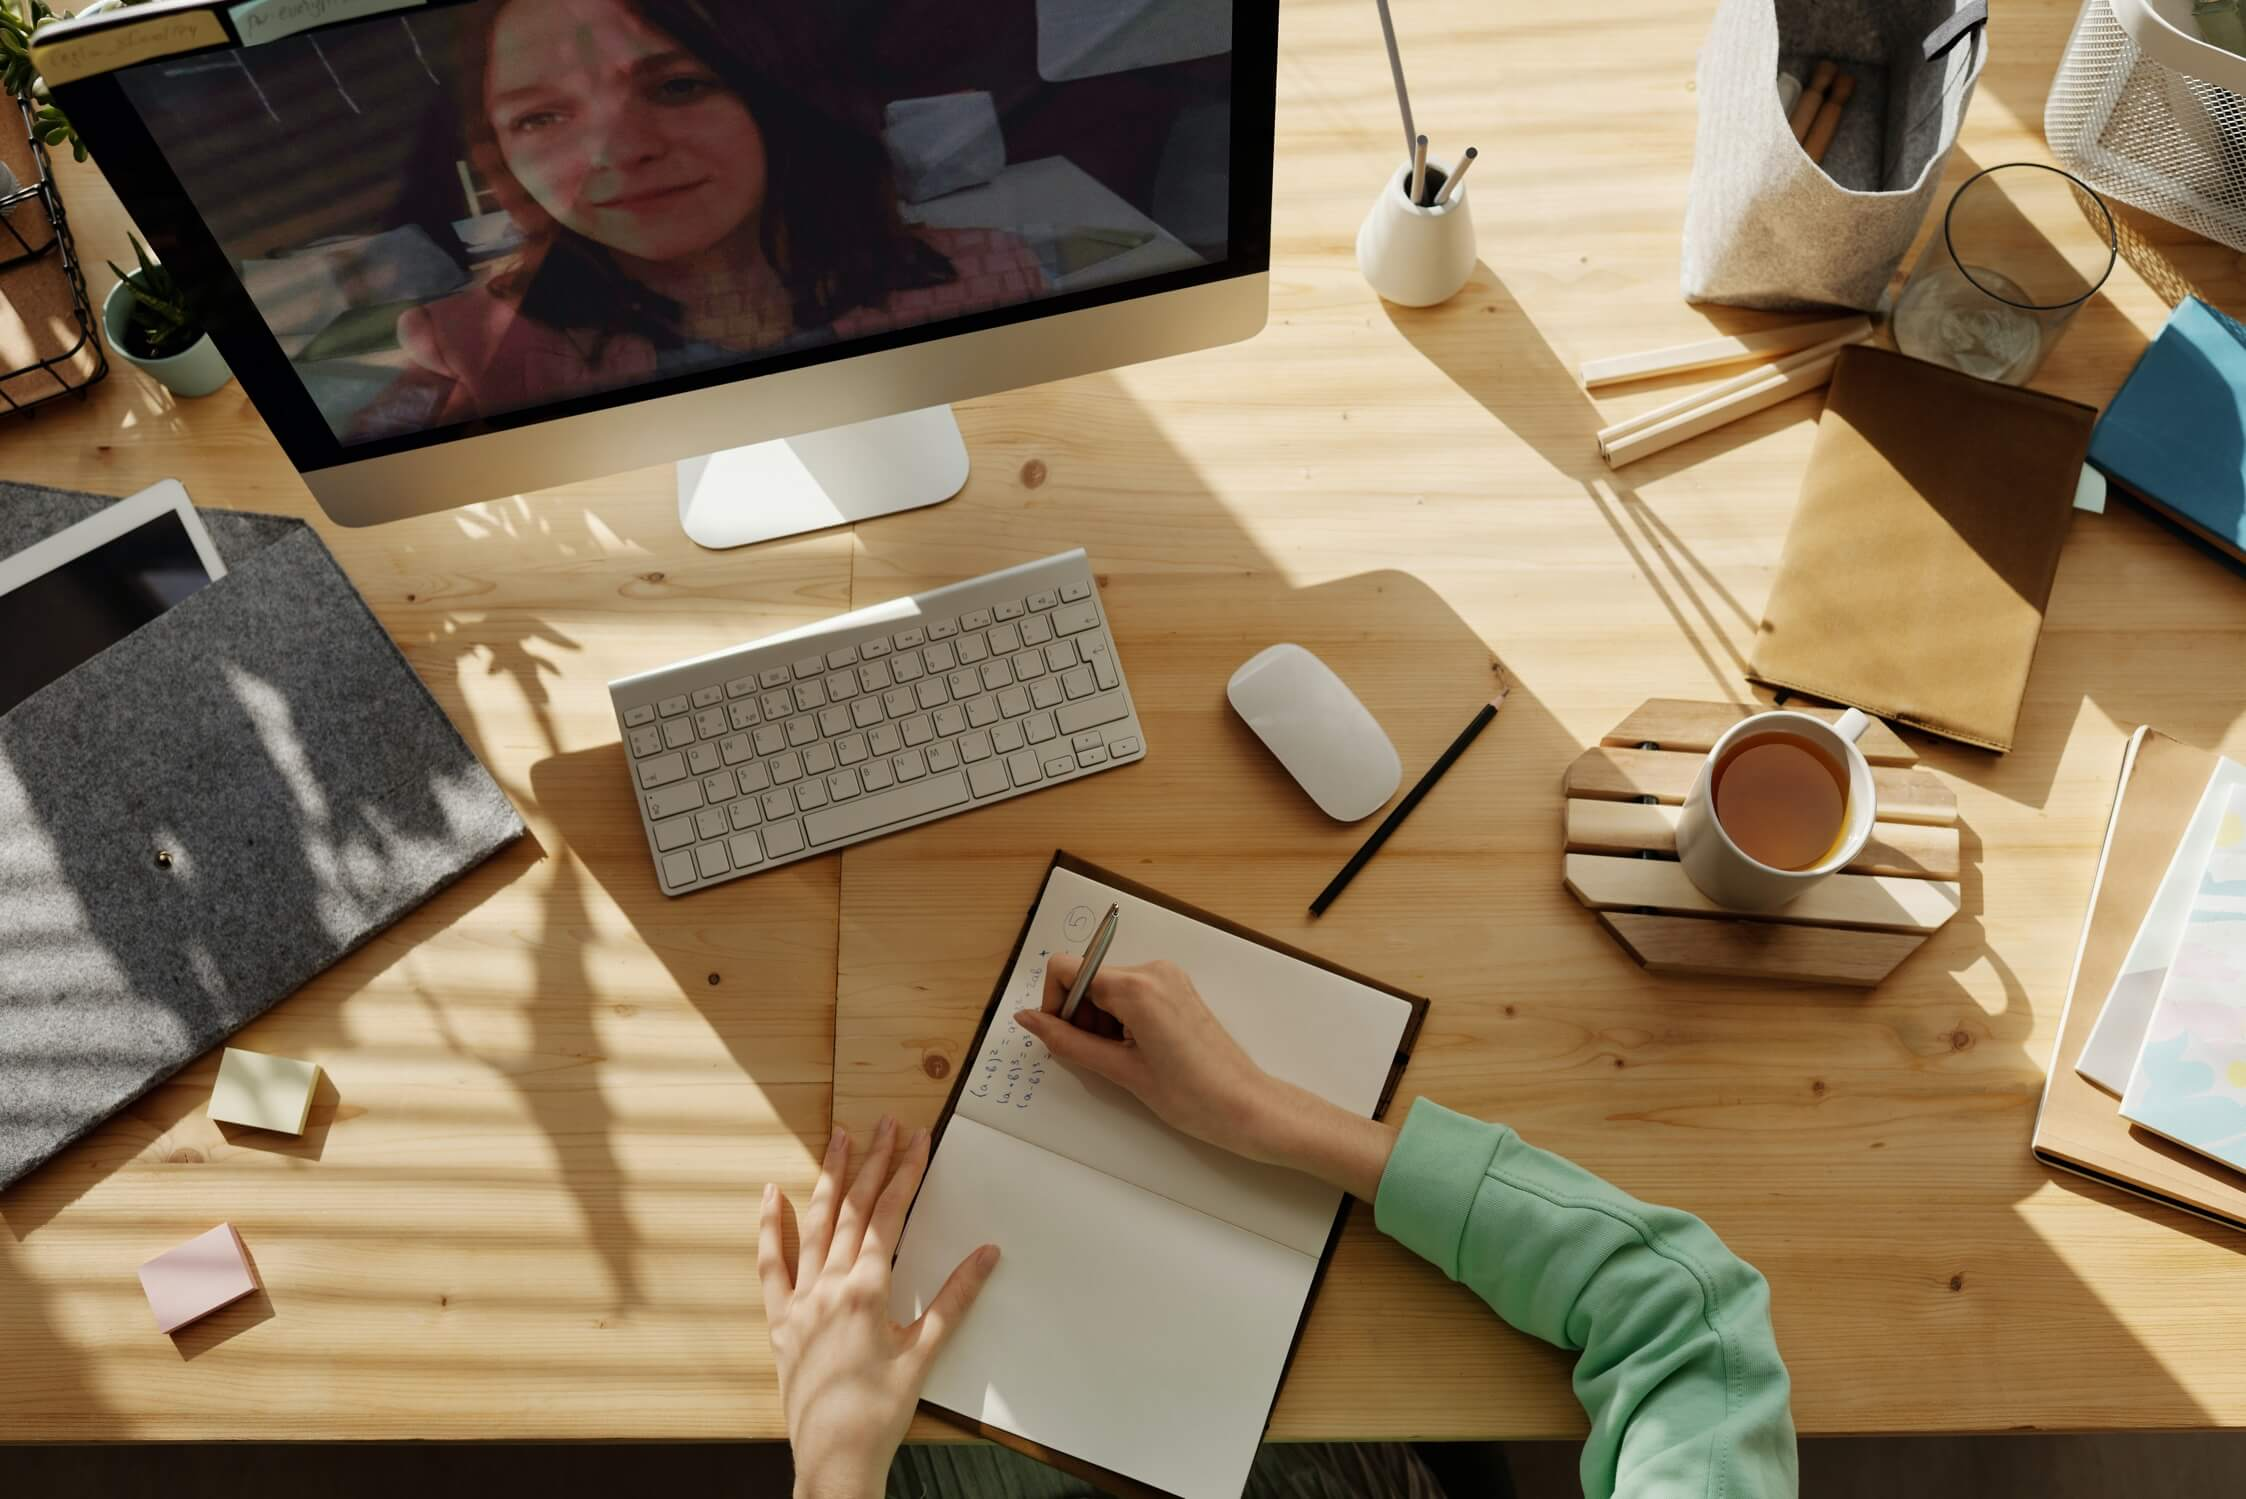 5 video job interview mistakes to avoid at all costs